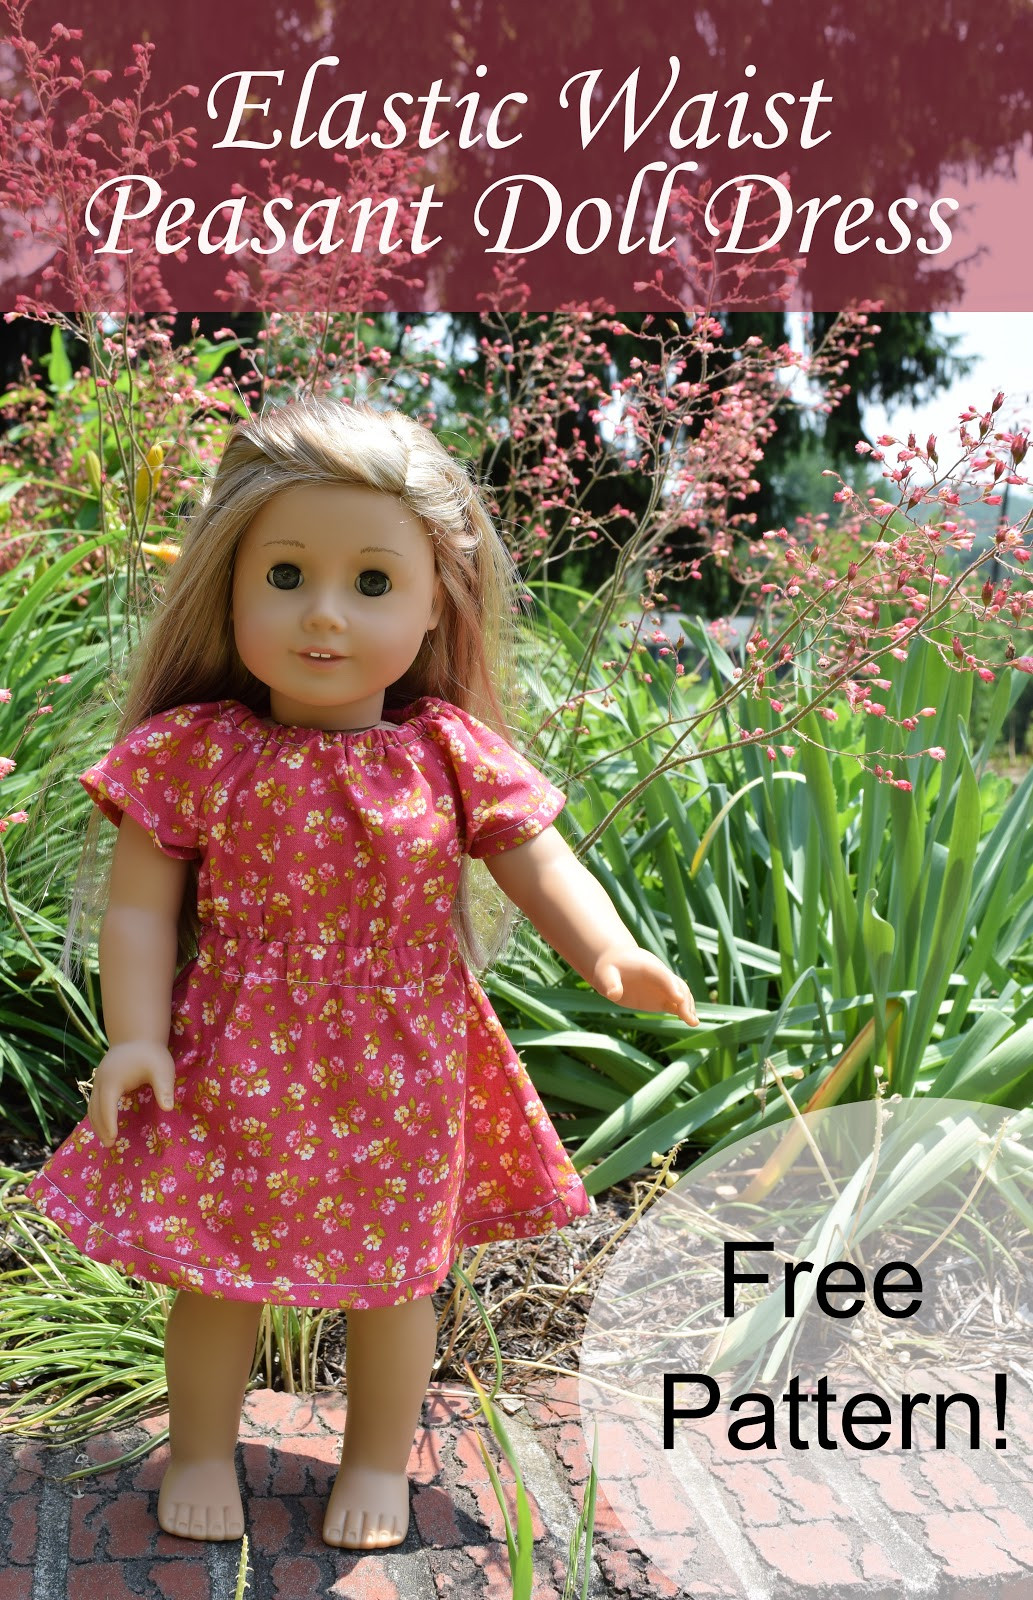 Beautiful Elastic Waist Doll Dress Pattern American Girl Doll Clothes Patterns Of Incredible 40 Images American Girl Doll Clothes Patterns